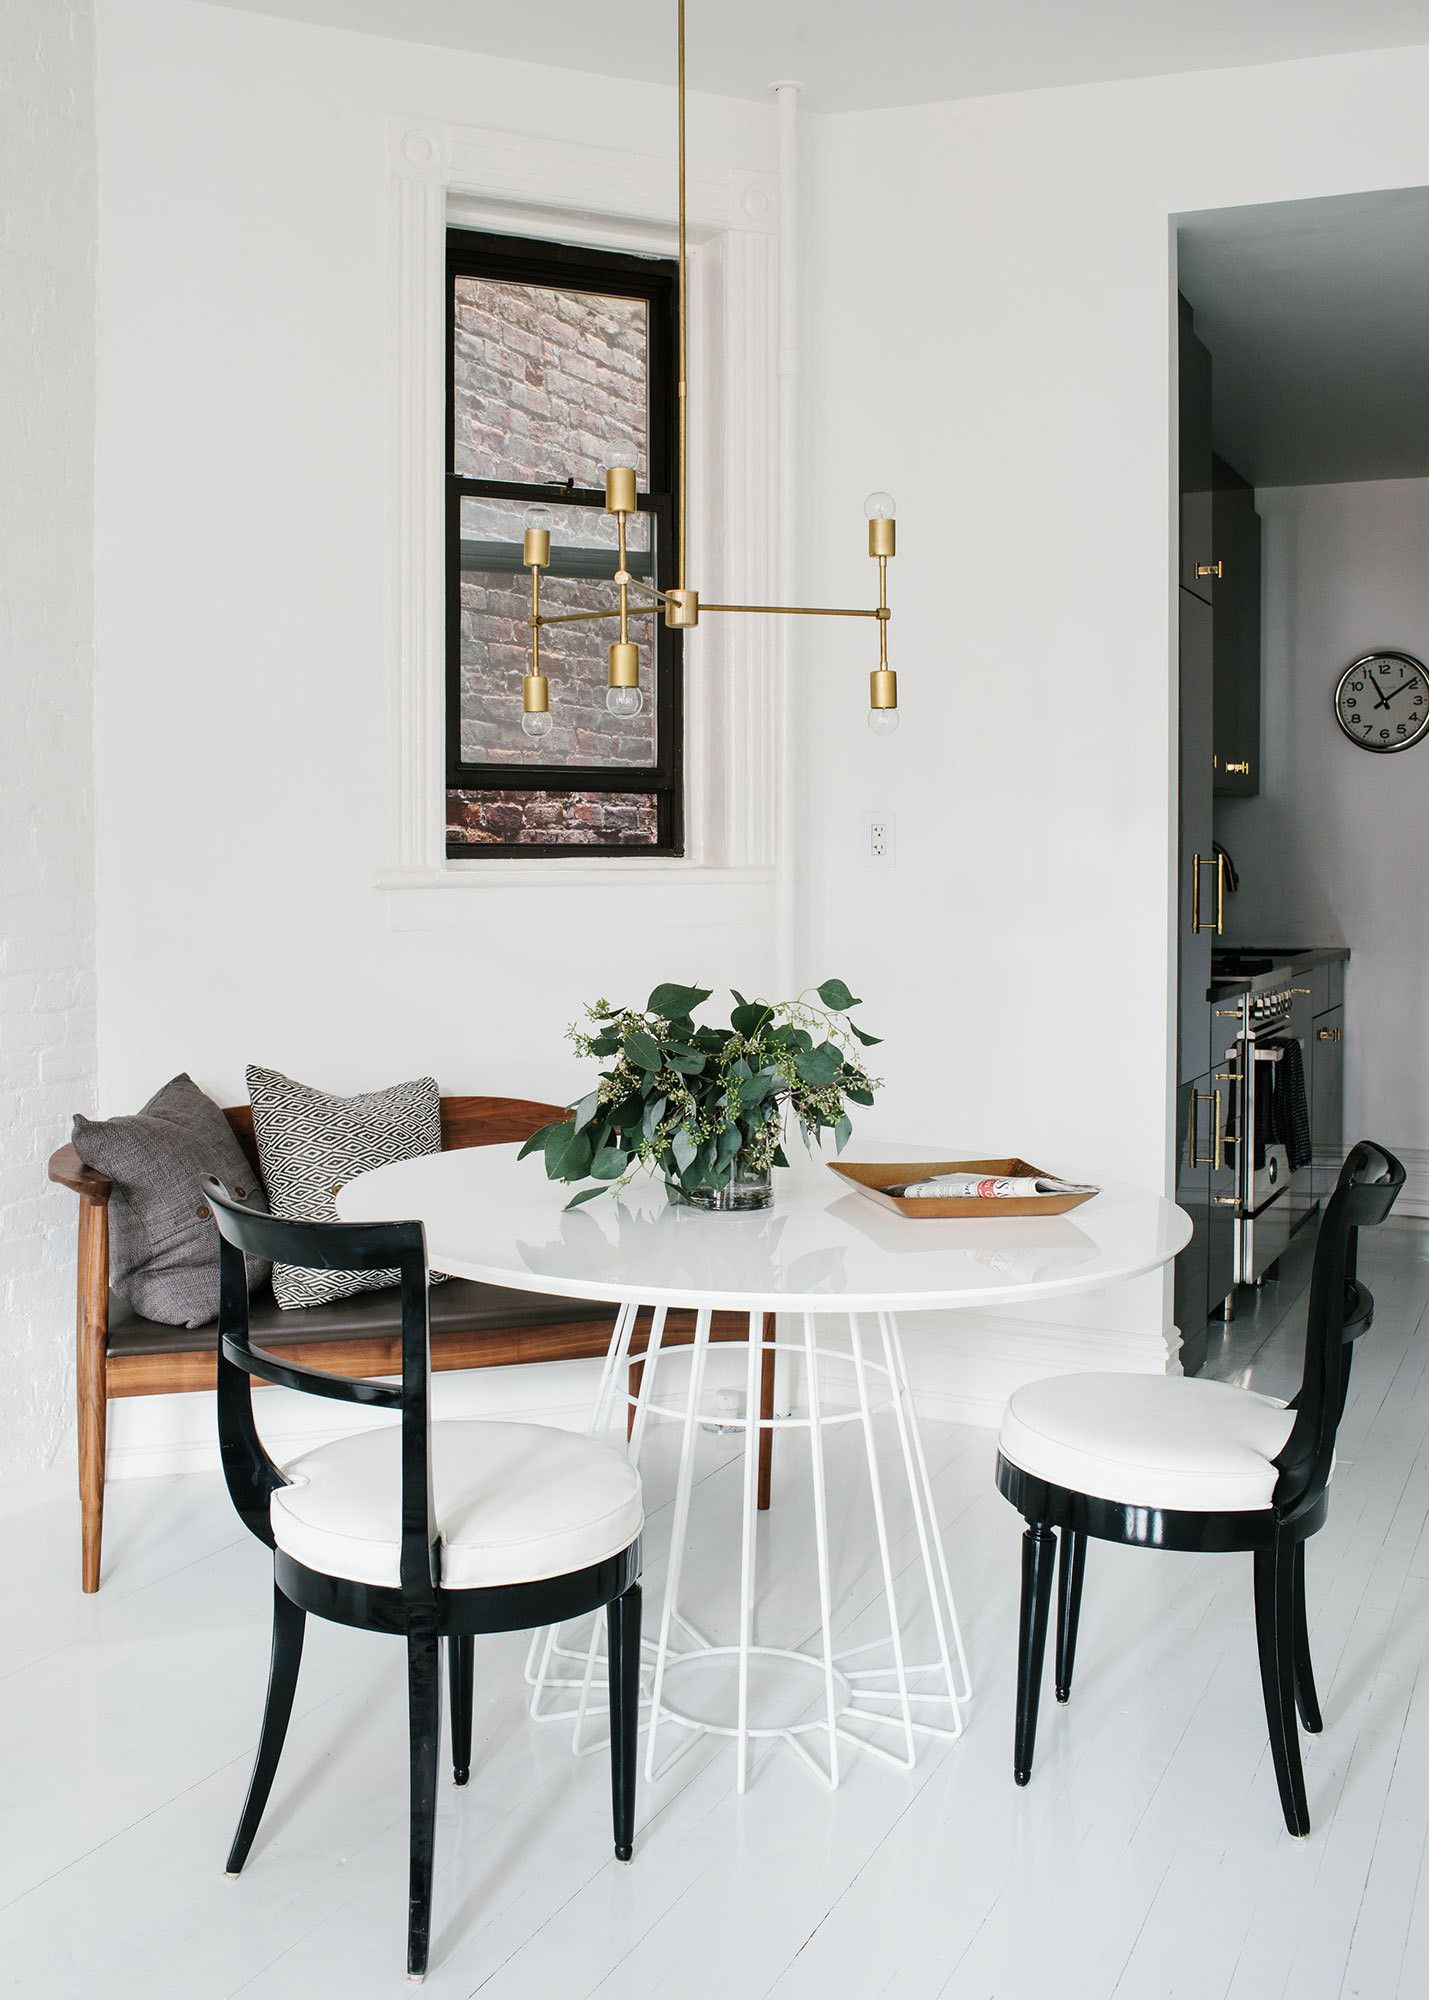 6 Ways to Make Your Dining Room Look More Expensive